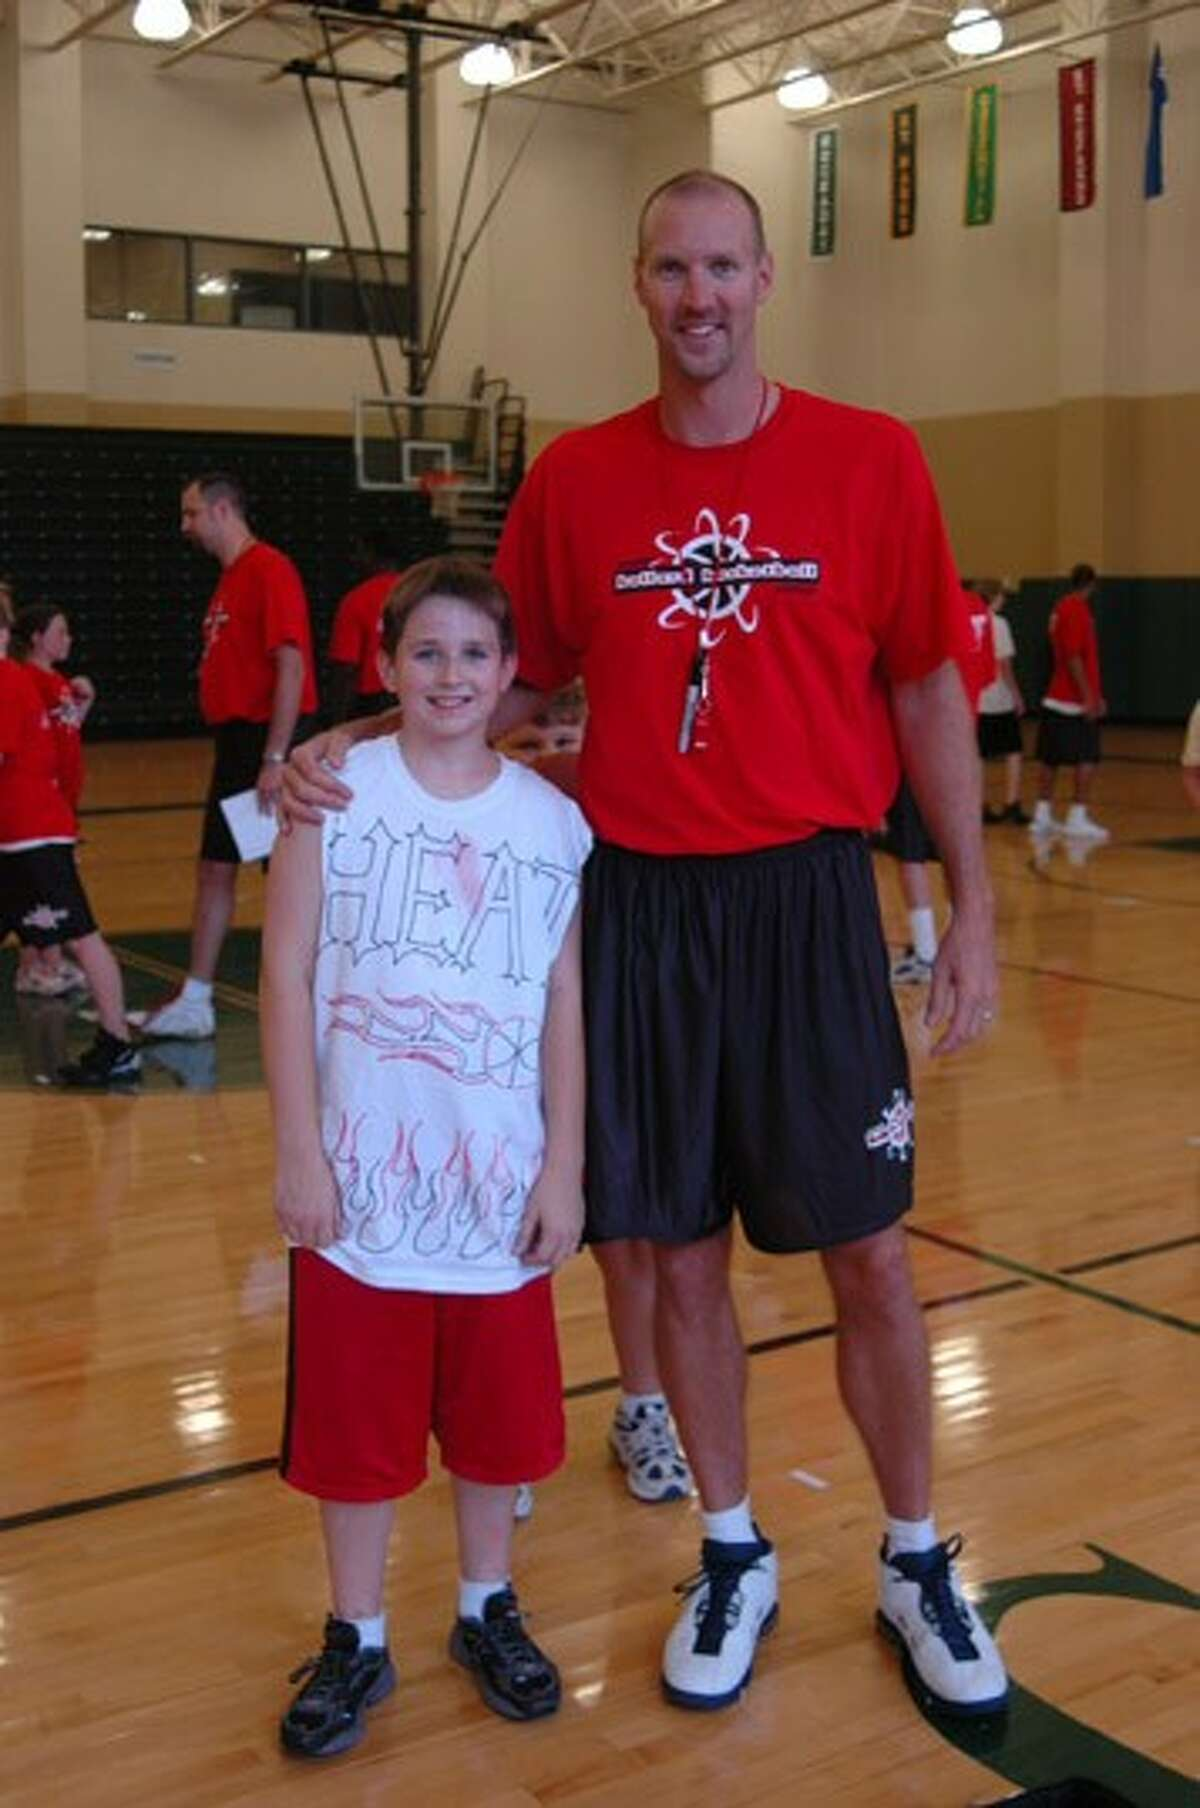 Former Houston Rockets player Matt Bullard poses with one of his summer basketball camp students. Bullard will host his 19th annual camp Monday through Friday at The John Cooper School in The Woodlands.